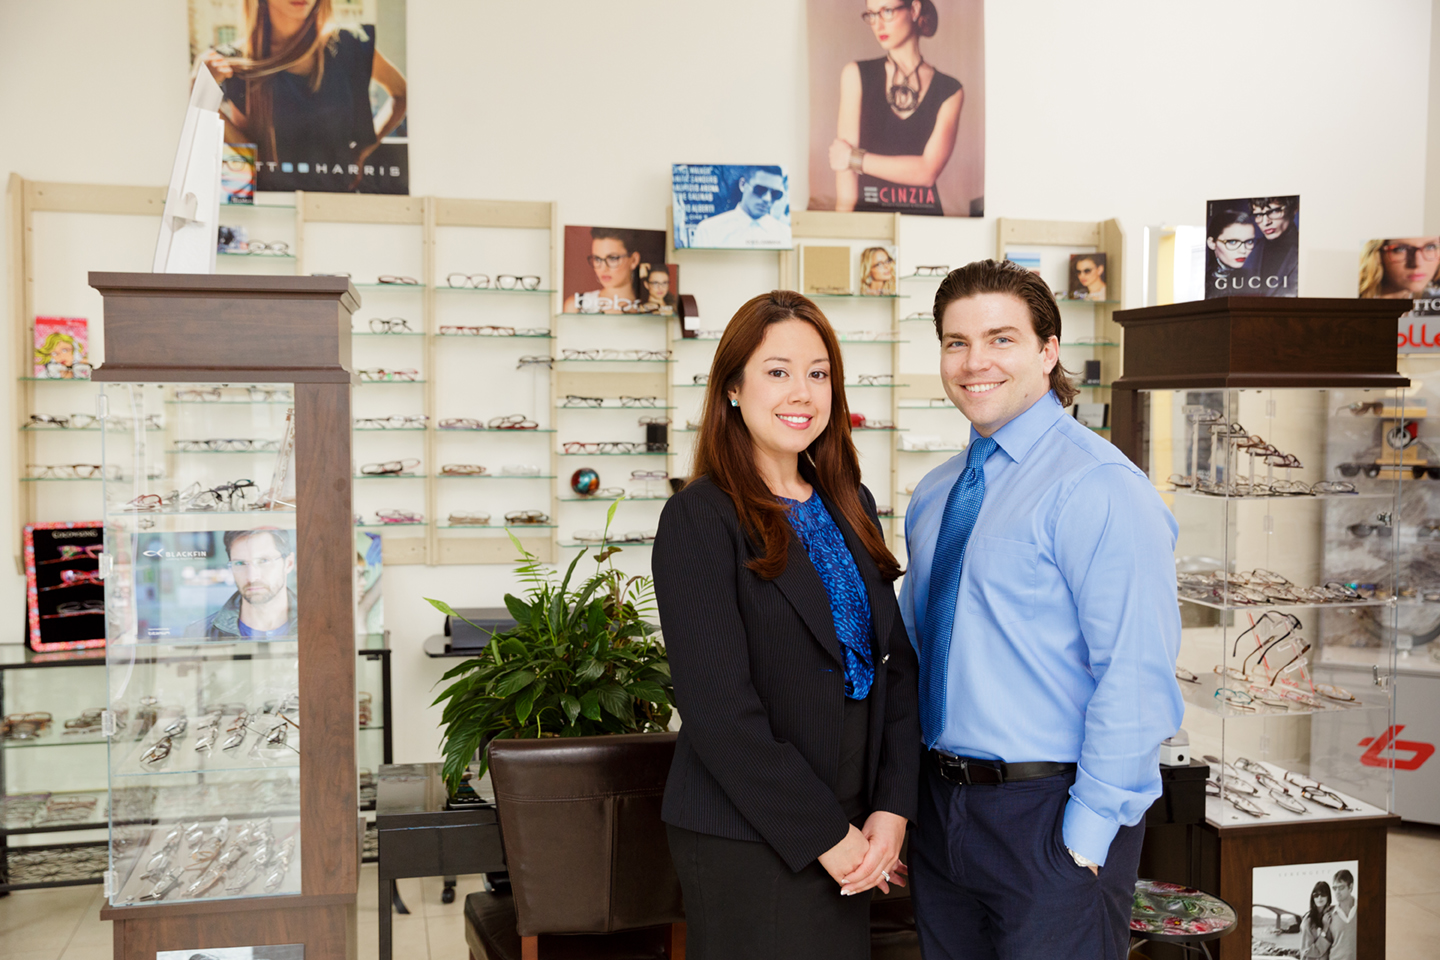 Patients are Family at Uptown Eyecare